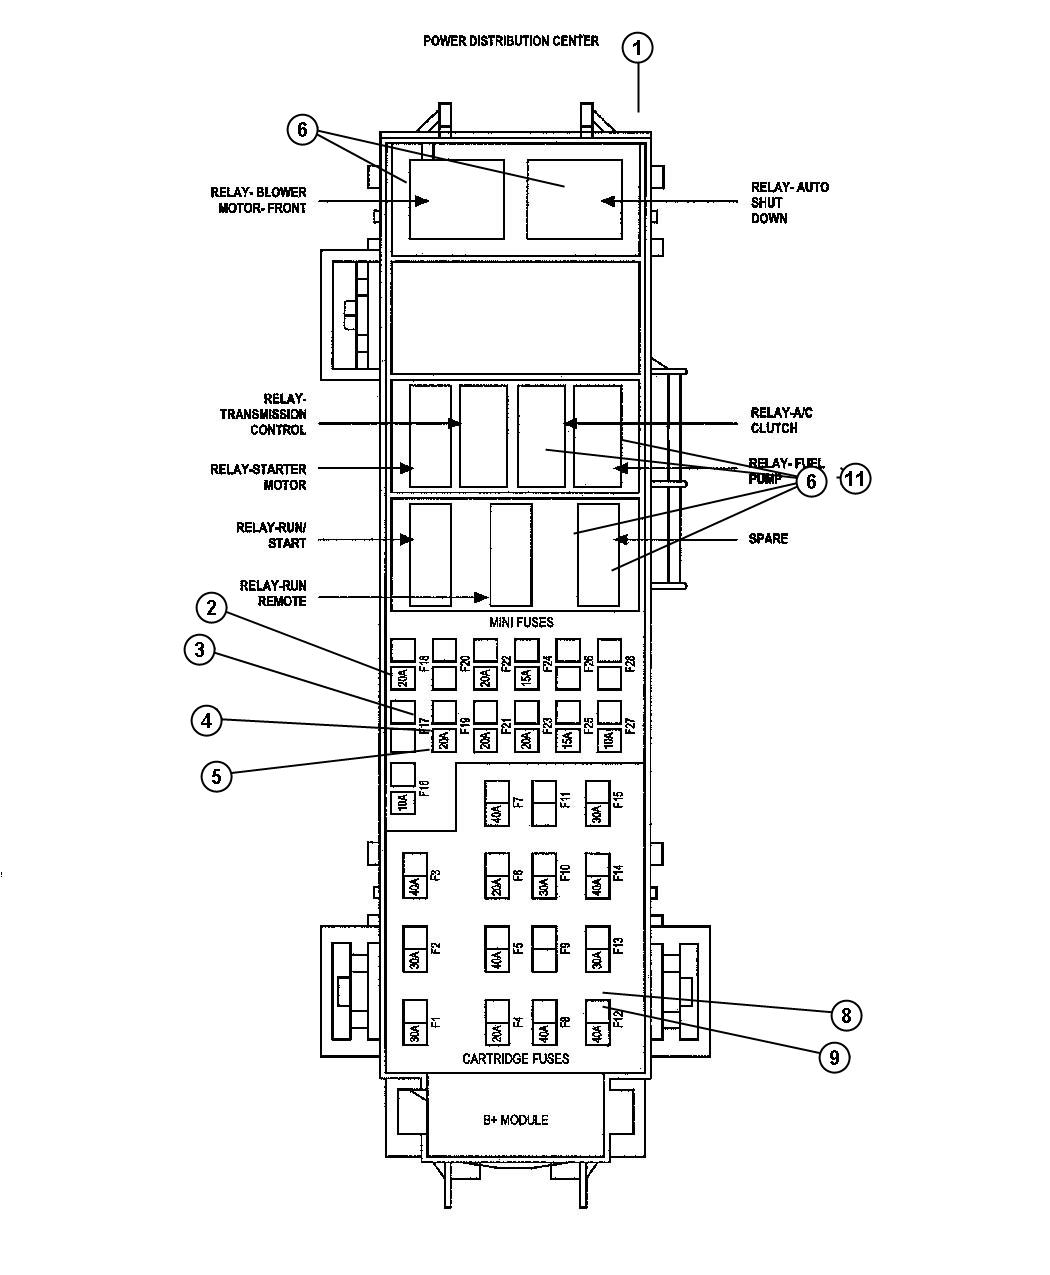 2005 ford 500 fuse box diagram 2005 image wiring power window wiring diagram 2005 ford 500 power discover your on 2005 ford 500 fuse box